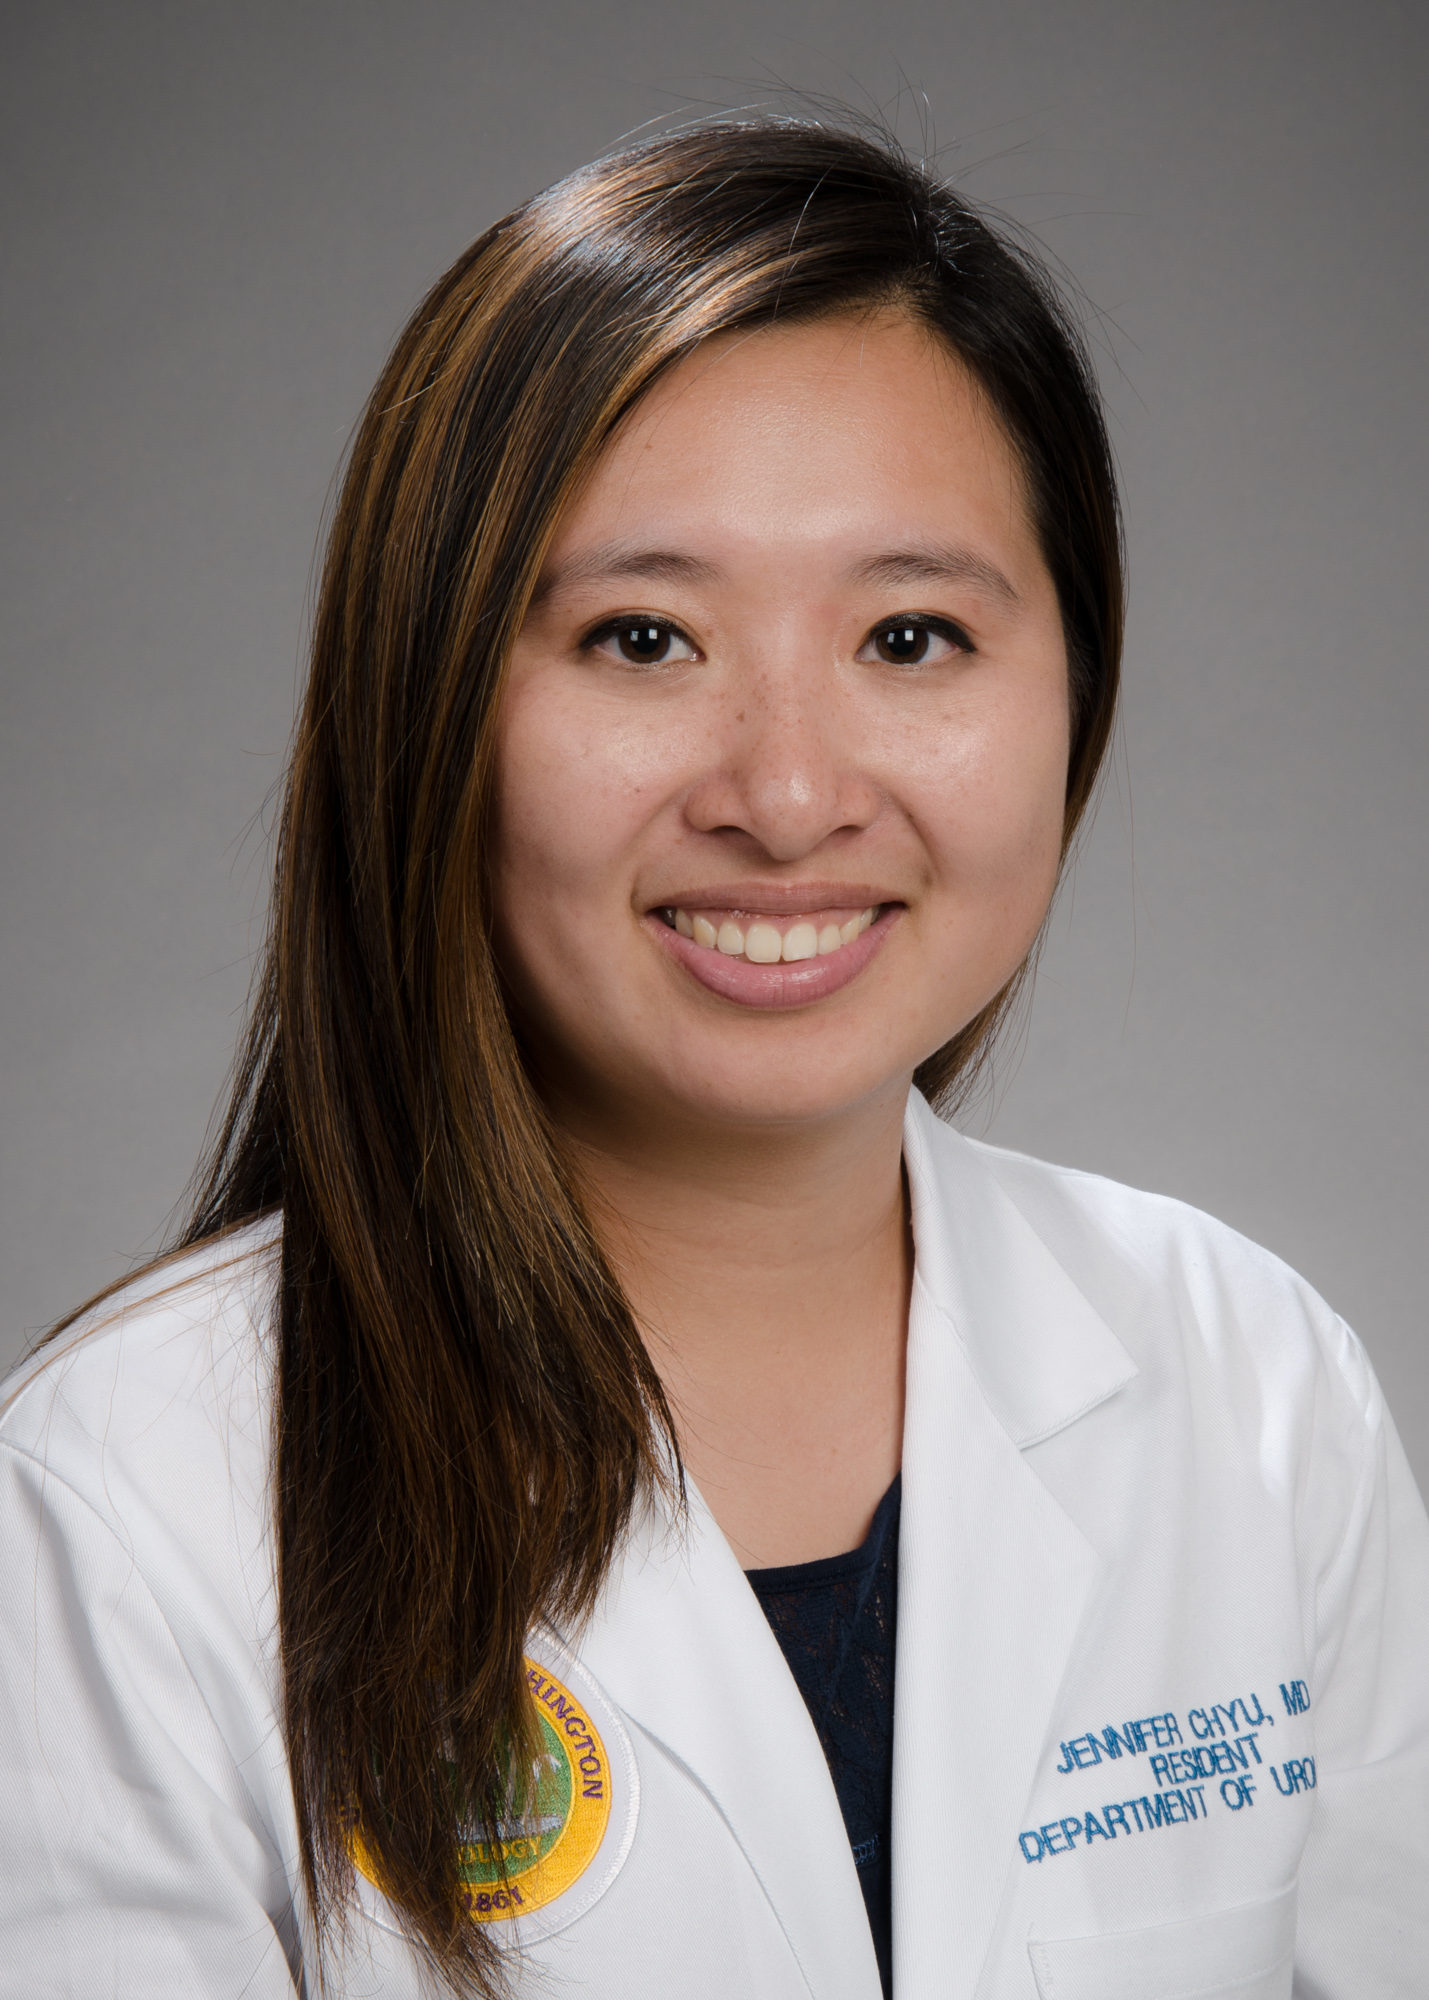 Jennifer Chyu, MD